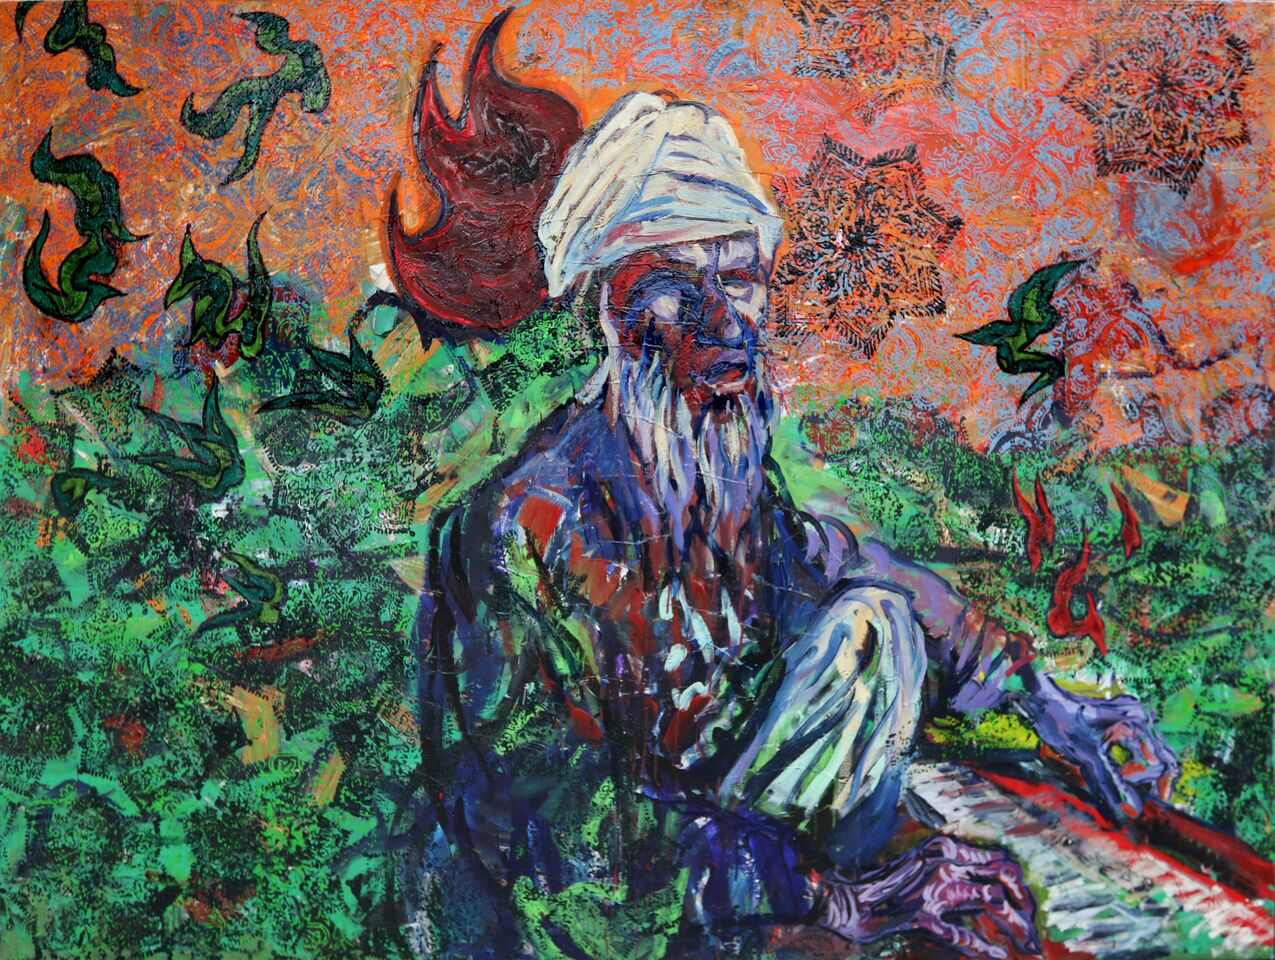 PAINTINGS OF THE OLD SUFI AND THE MYSTICAL PAINTINGS HE HAS INSPIRED.